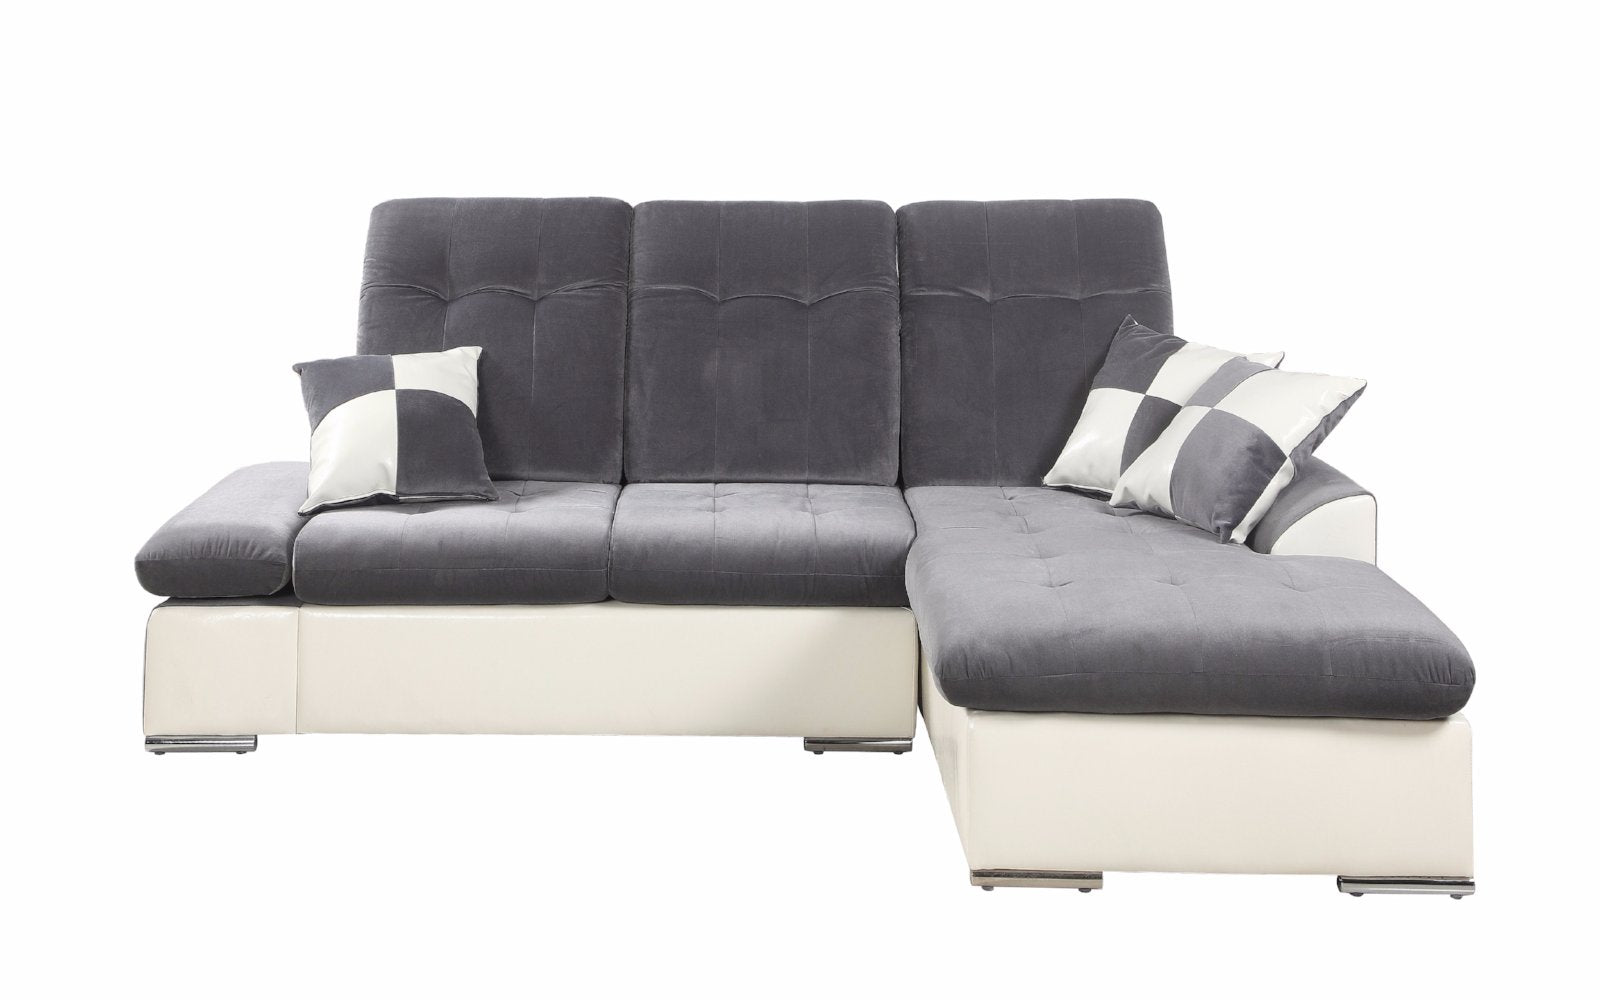 Concorde Microfiber And Faux Leather Sectional Sofa With Chaise ...